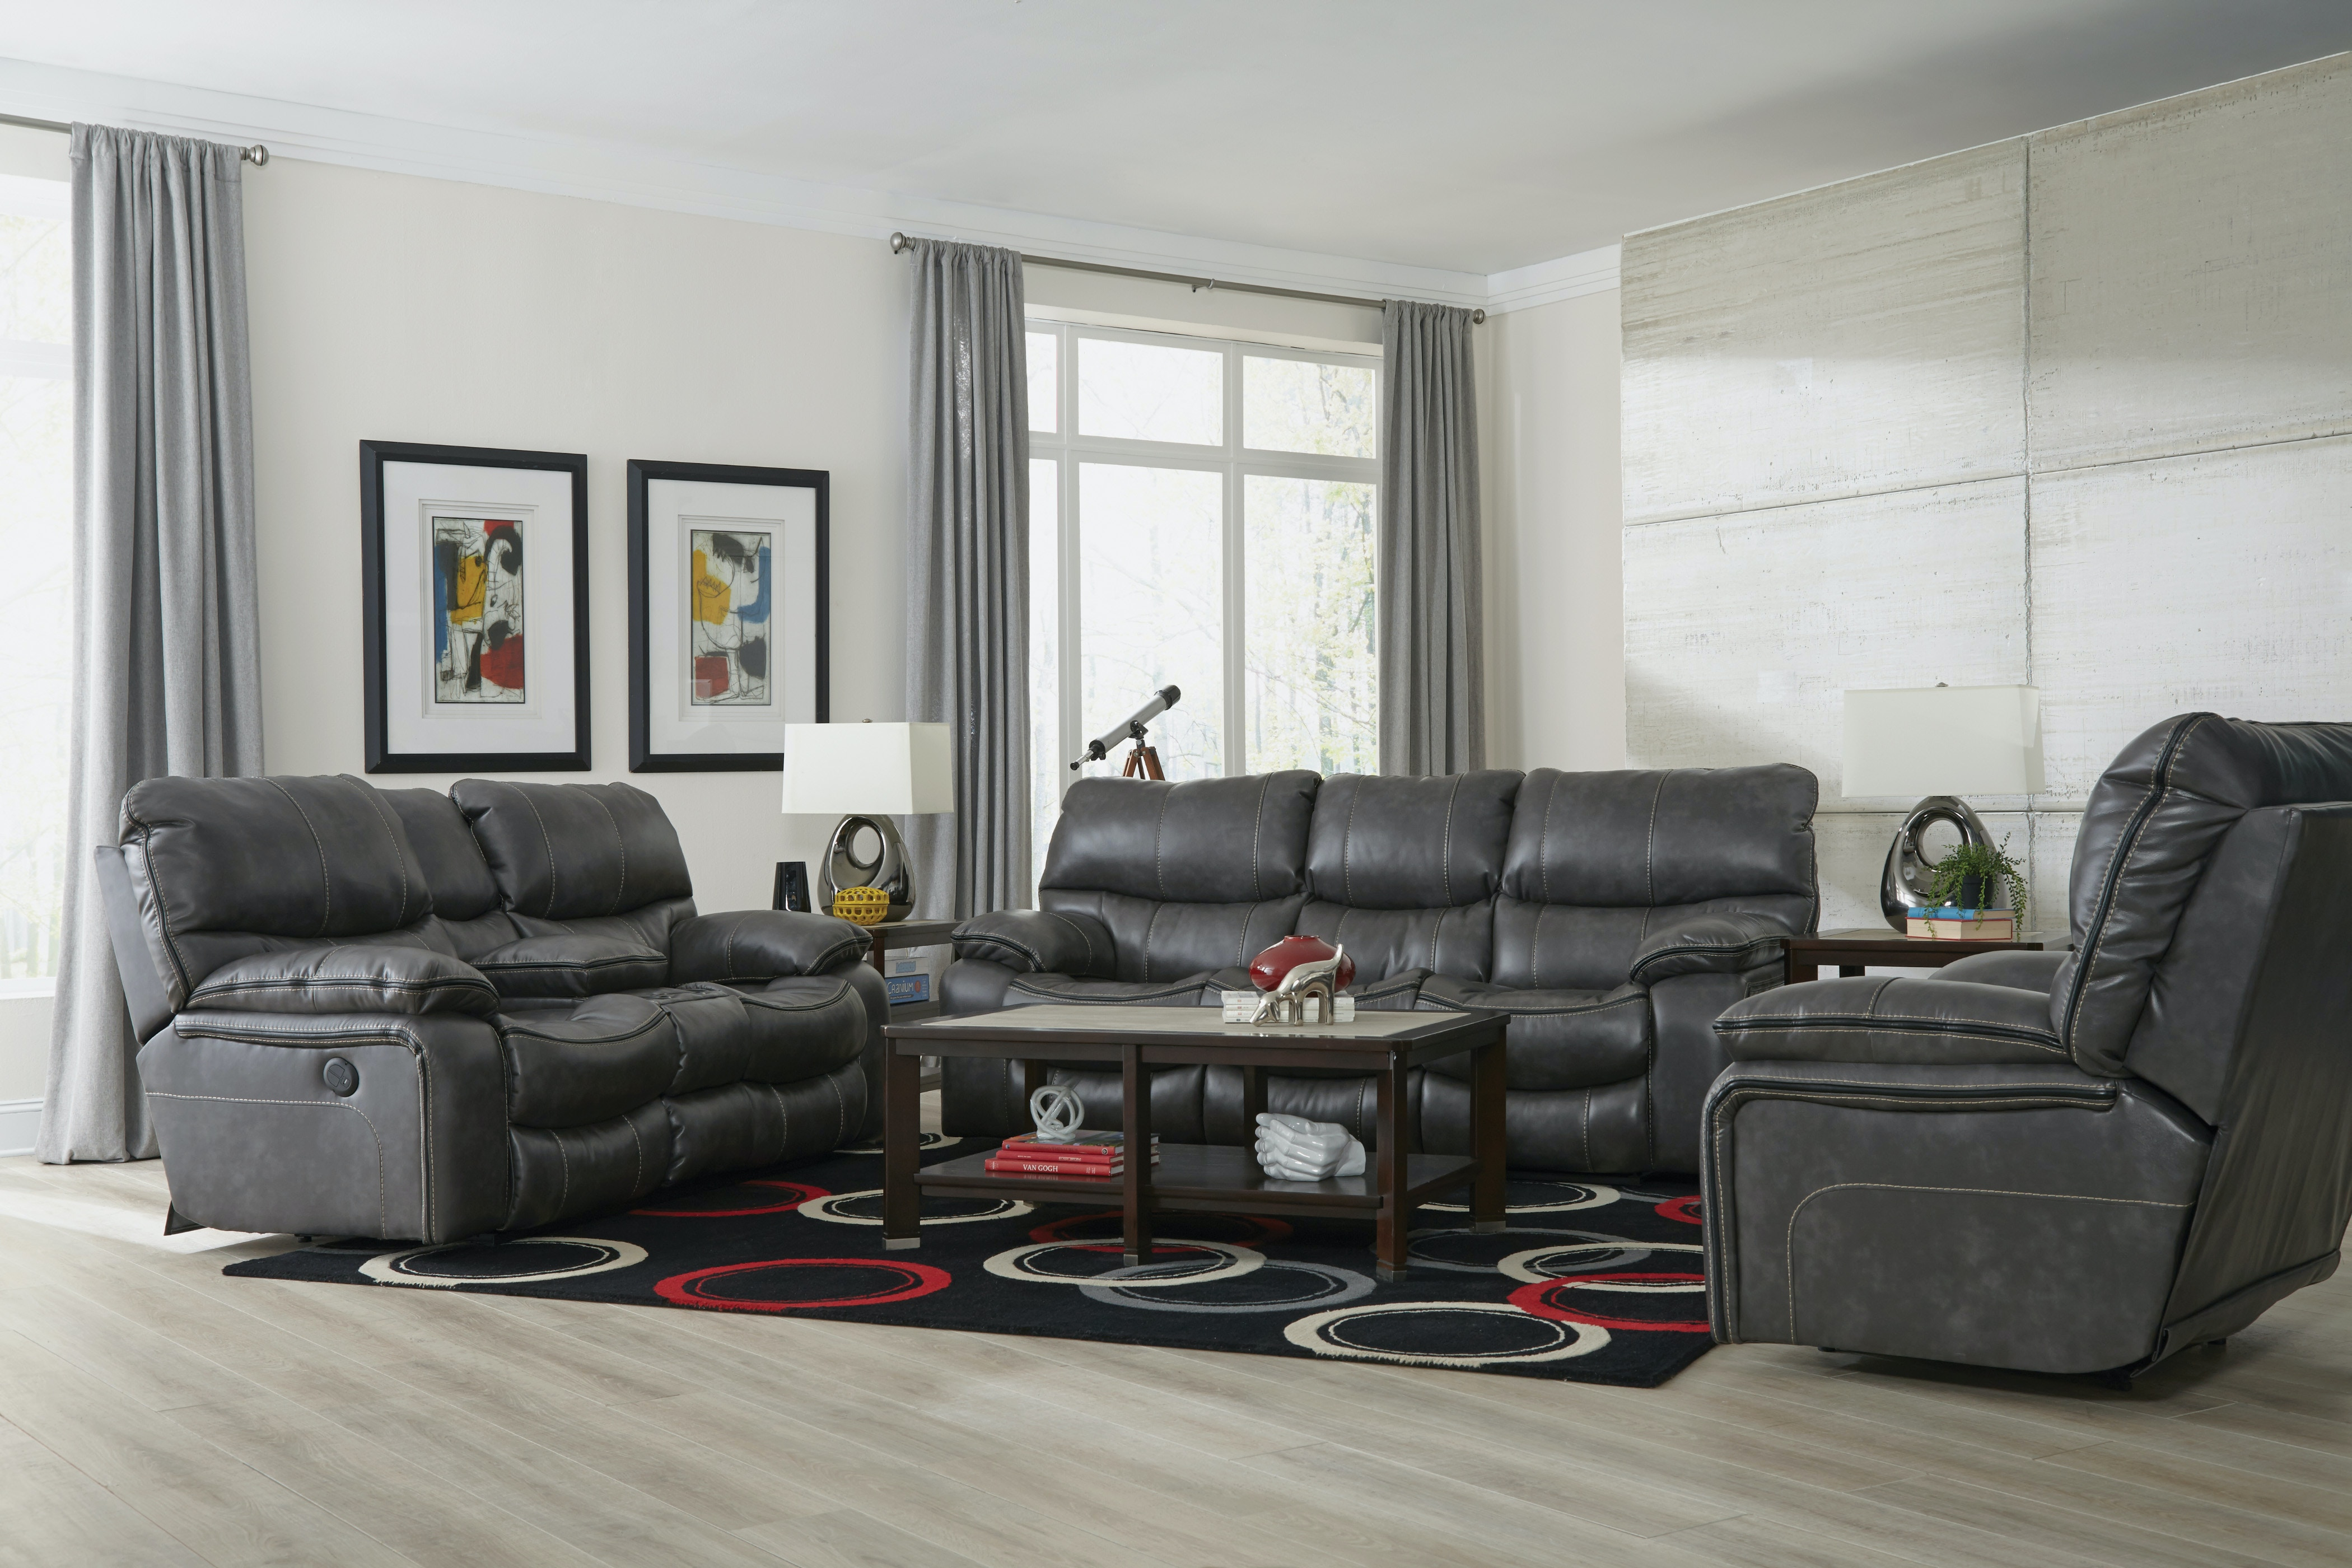 Marvelous Catnapper Furniture Camden Reclining Sofa U0026 Rock/Recl Loveseat 408 Steel Set